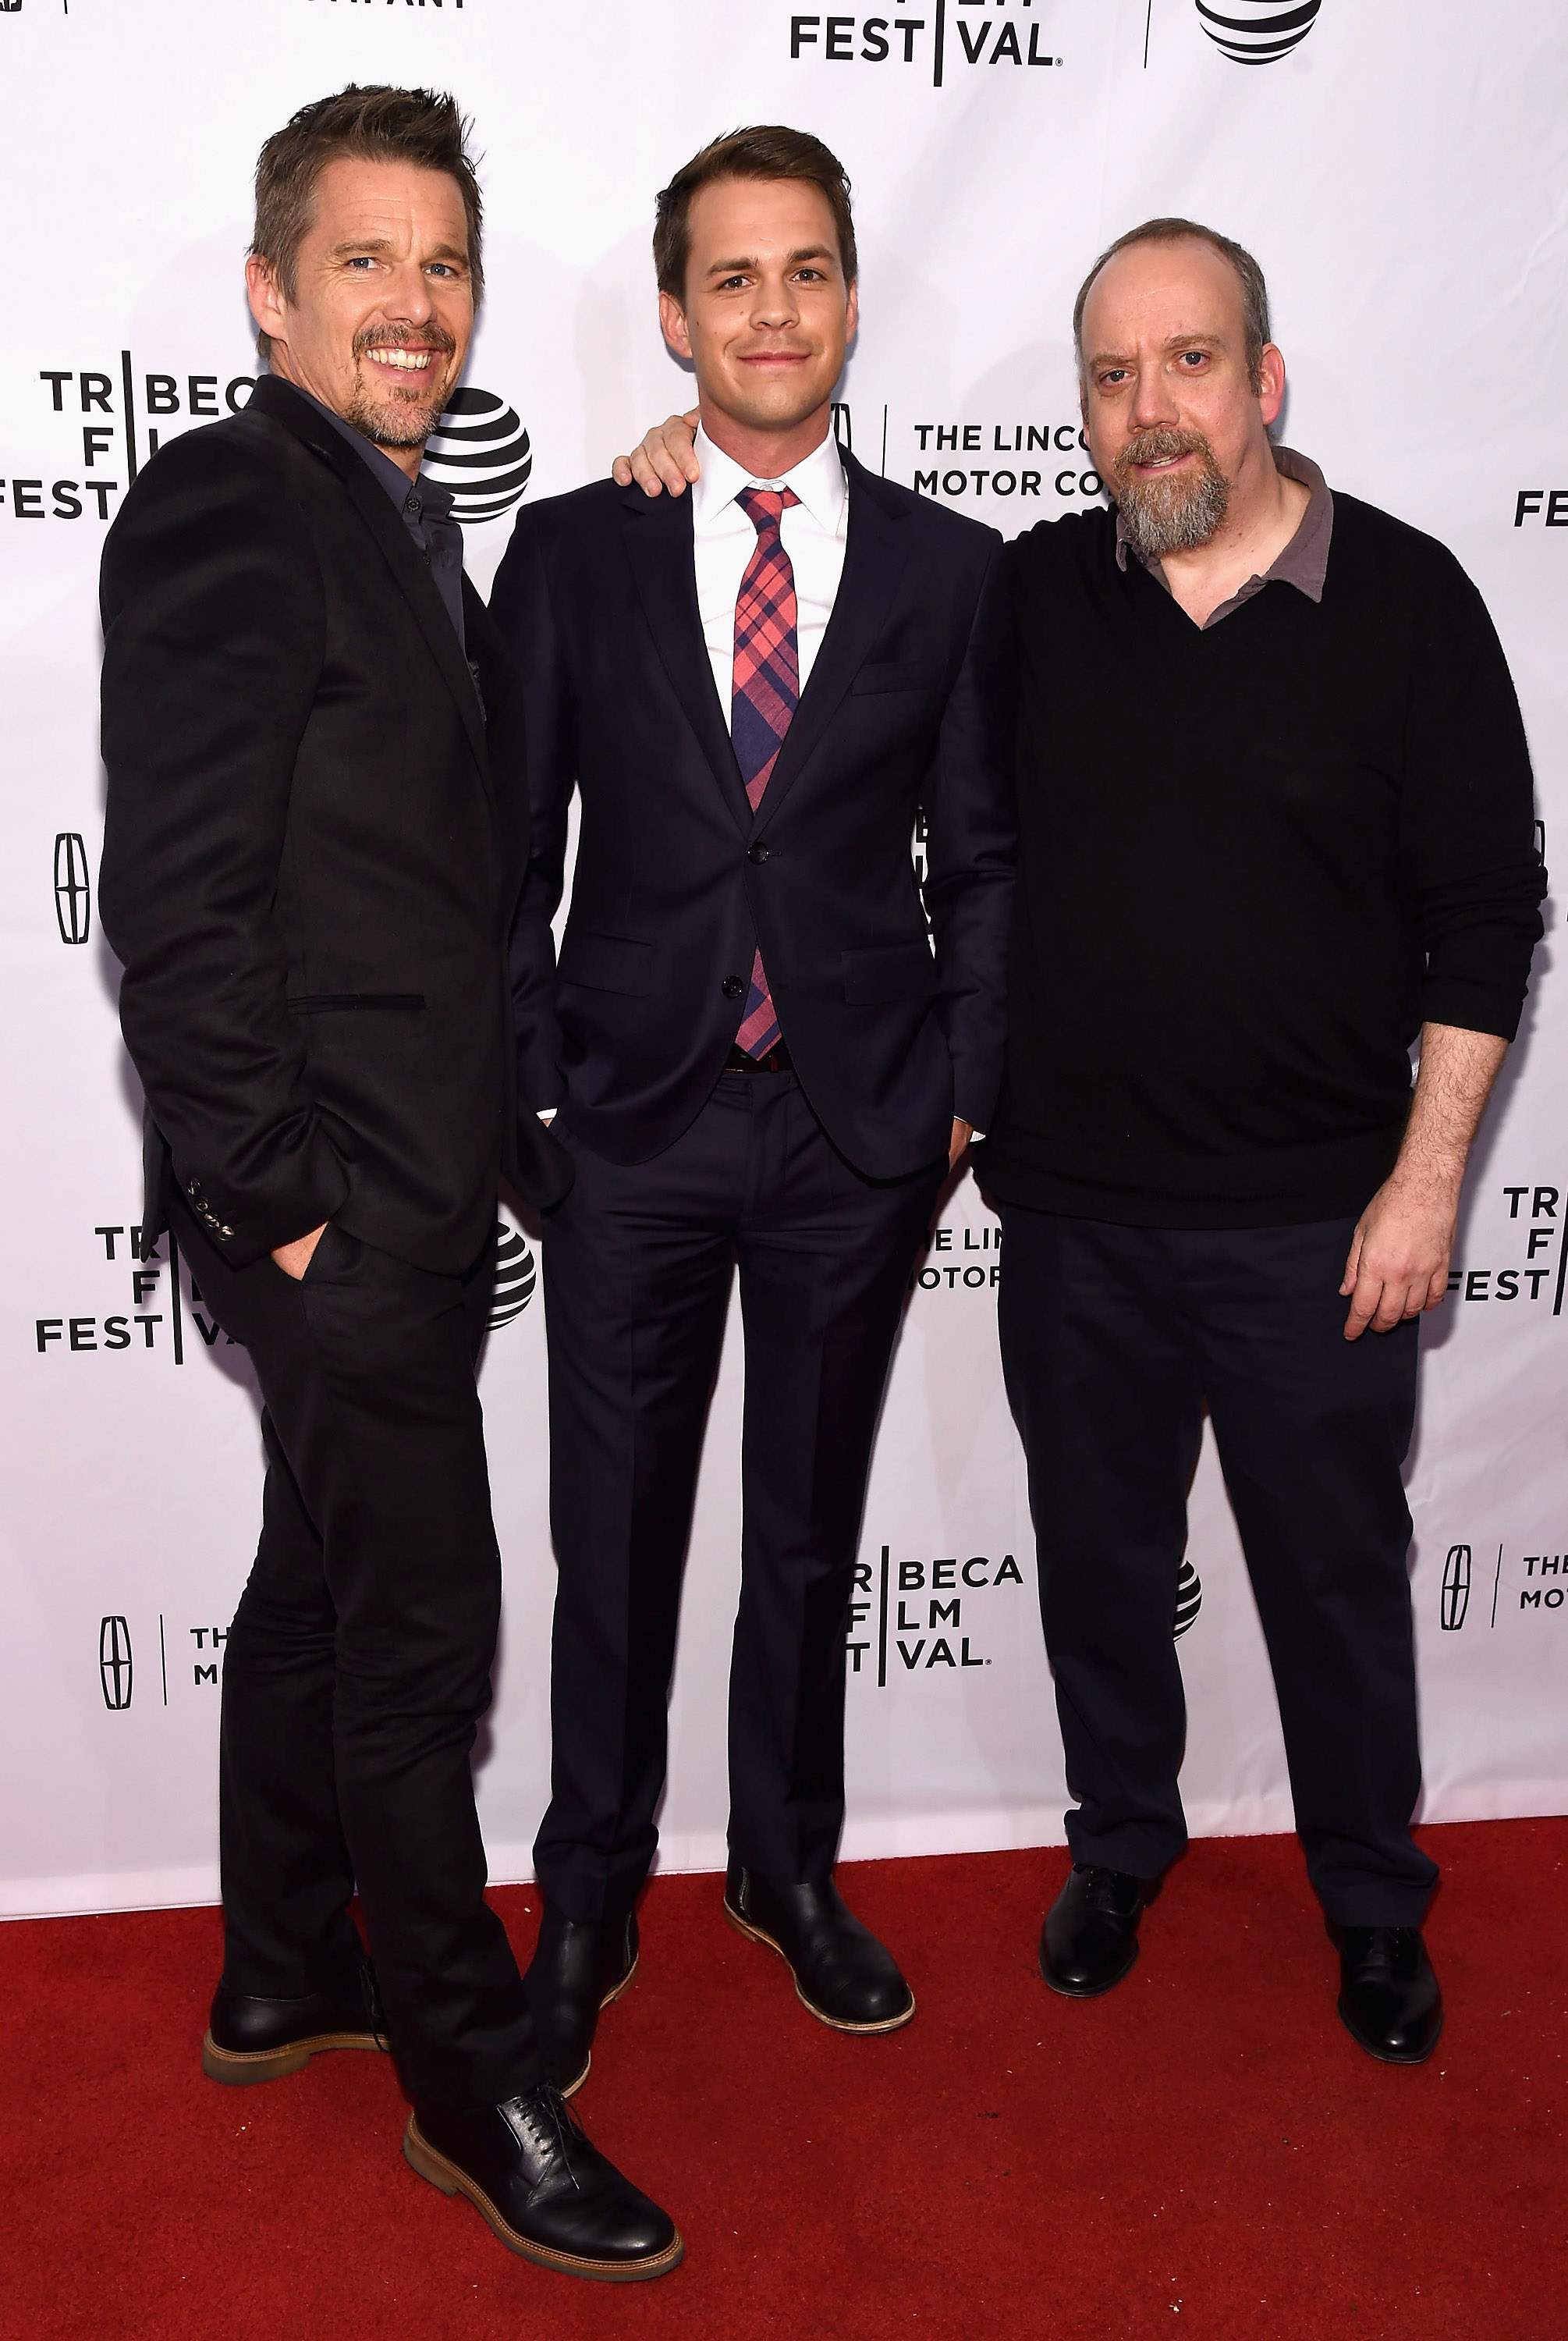 Ethan Hawke, Johnny Simmons and Paul Giamatti during the 2016 Tribeca Film Festival on April 17, 2016 in New York City.